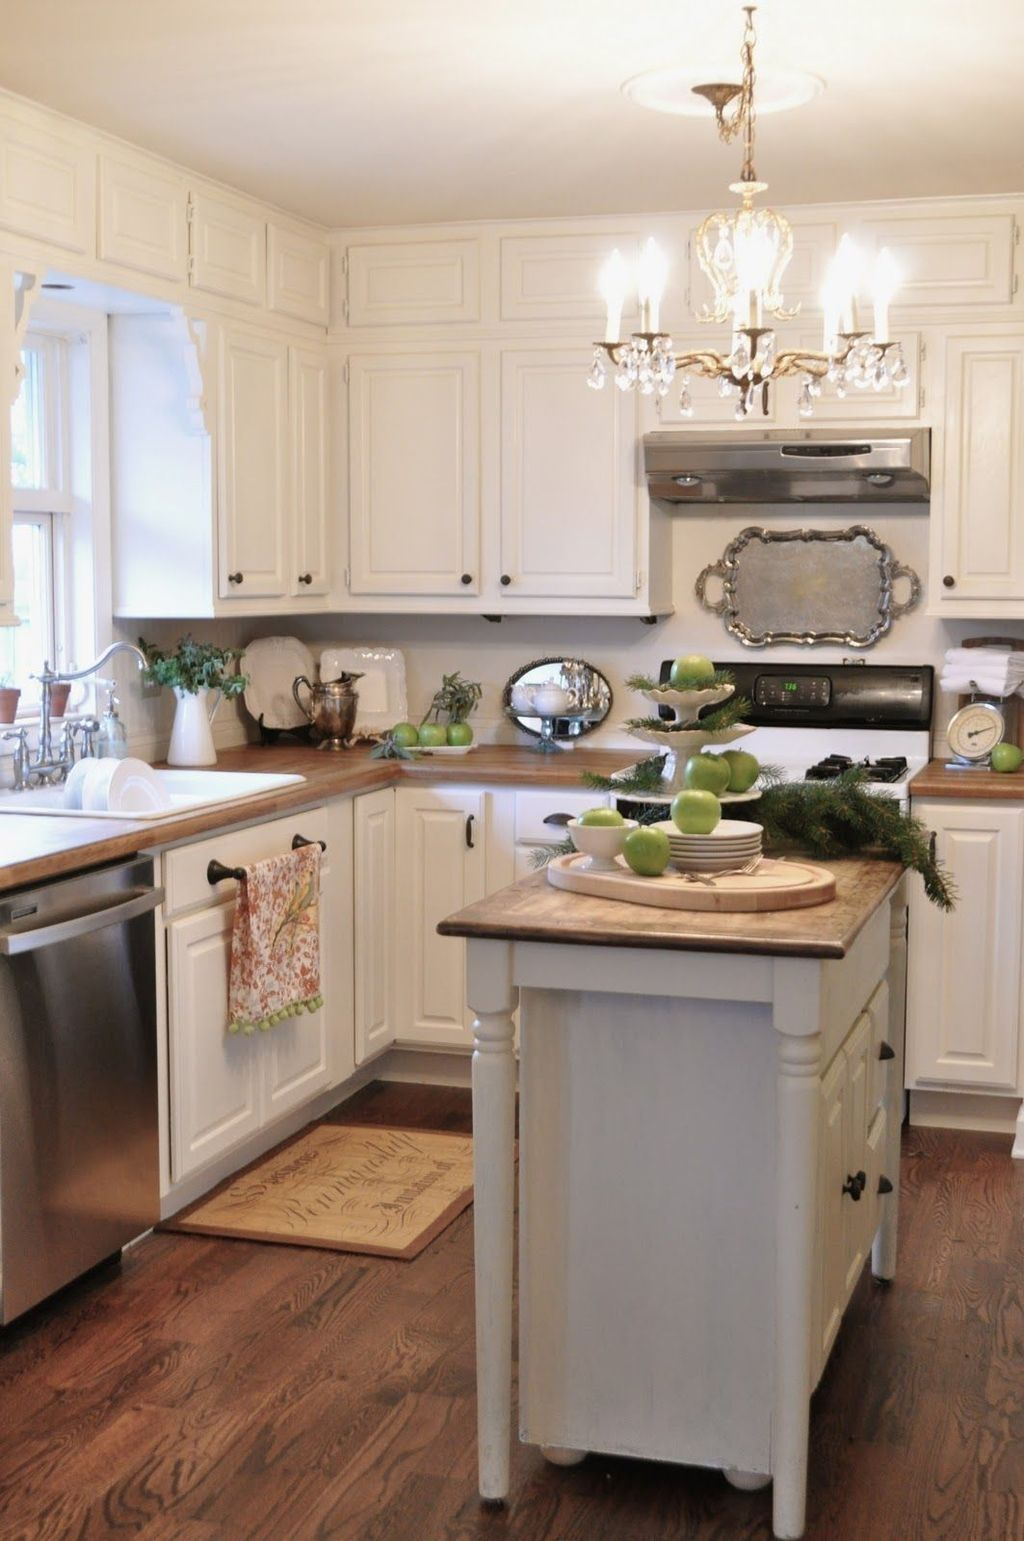 Awesome 30+ Ideas to Update Your Kitchen on a Budget. More ...